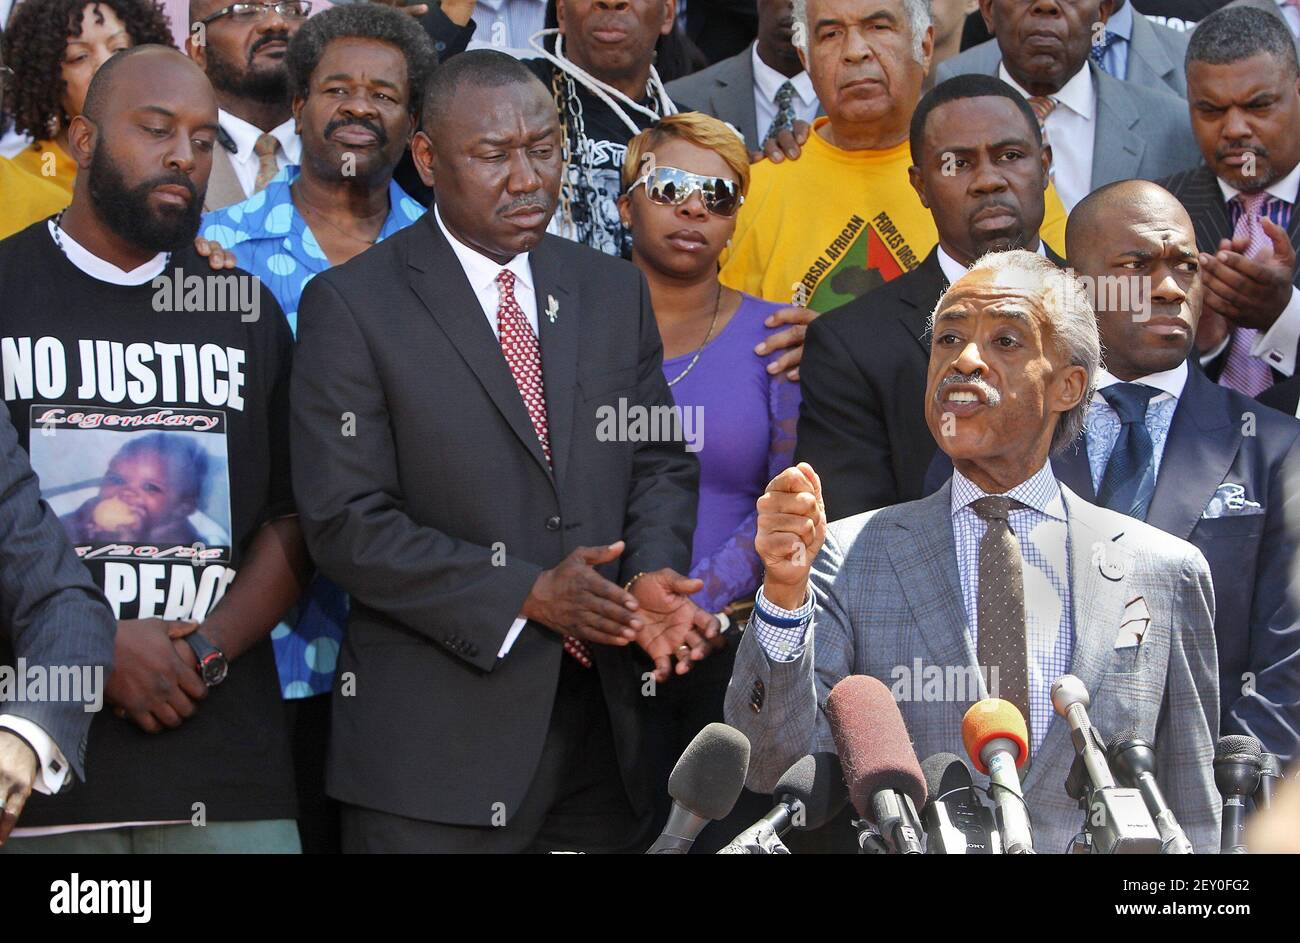 Rev. Al Sharpton addresses the media at a press conference about the shooting of Michael Brown on the steps of the Old Courthouse in St. Louis, Mo., on Tuesday, Aug. 12, 2014. Behind Sharpton, from left, is Michael Brown Sr., attorney Benjamin Crump, and Lesley McSpadden, Brown's mother. (Photo by J.B. Forbes/St. Louis Post-Dispatch/MCT/Sipa USA) Stock Photo